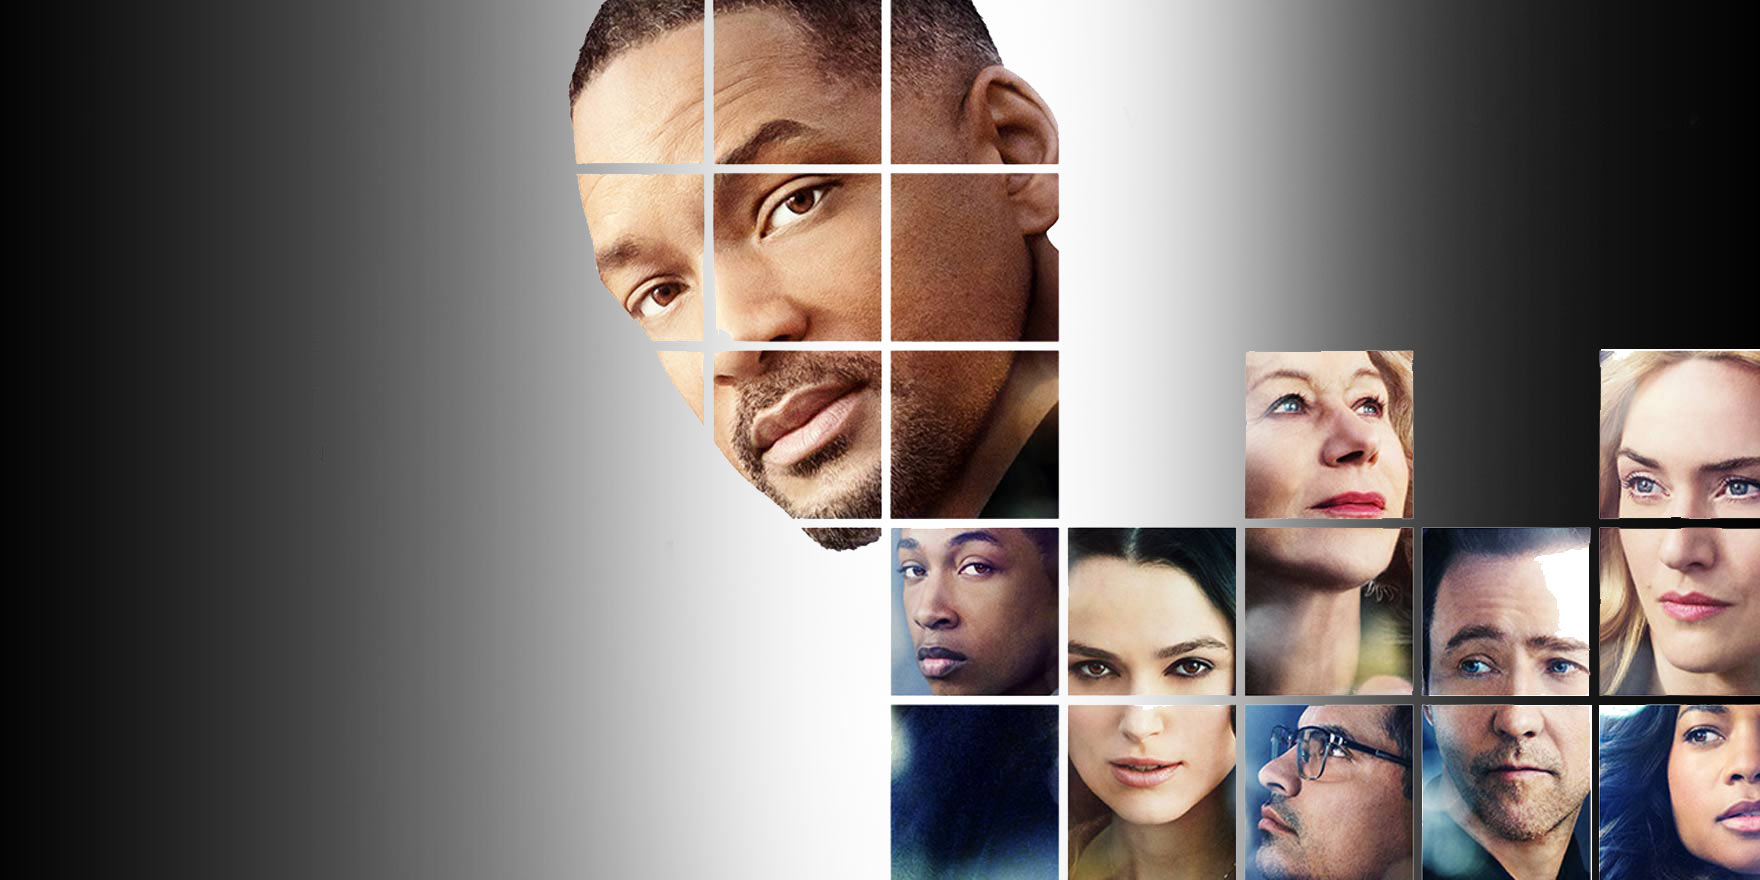 Collateral Beauty - Header Image